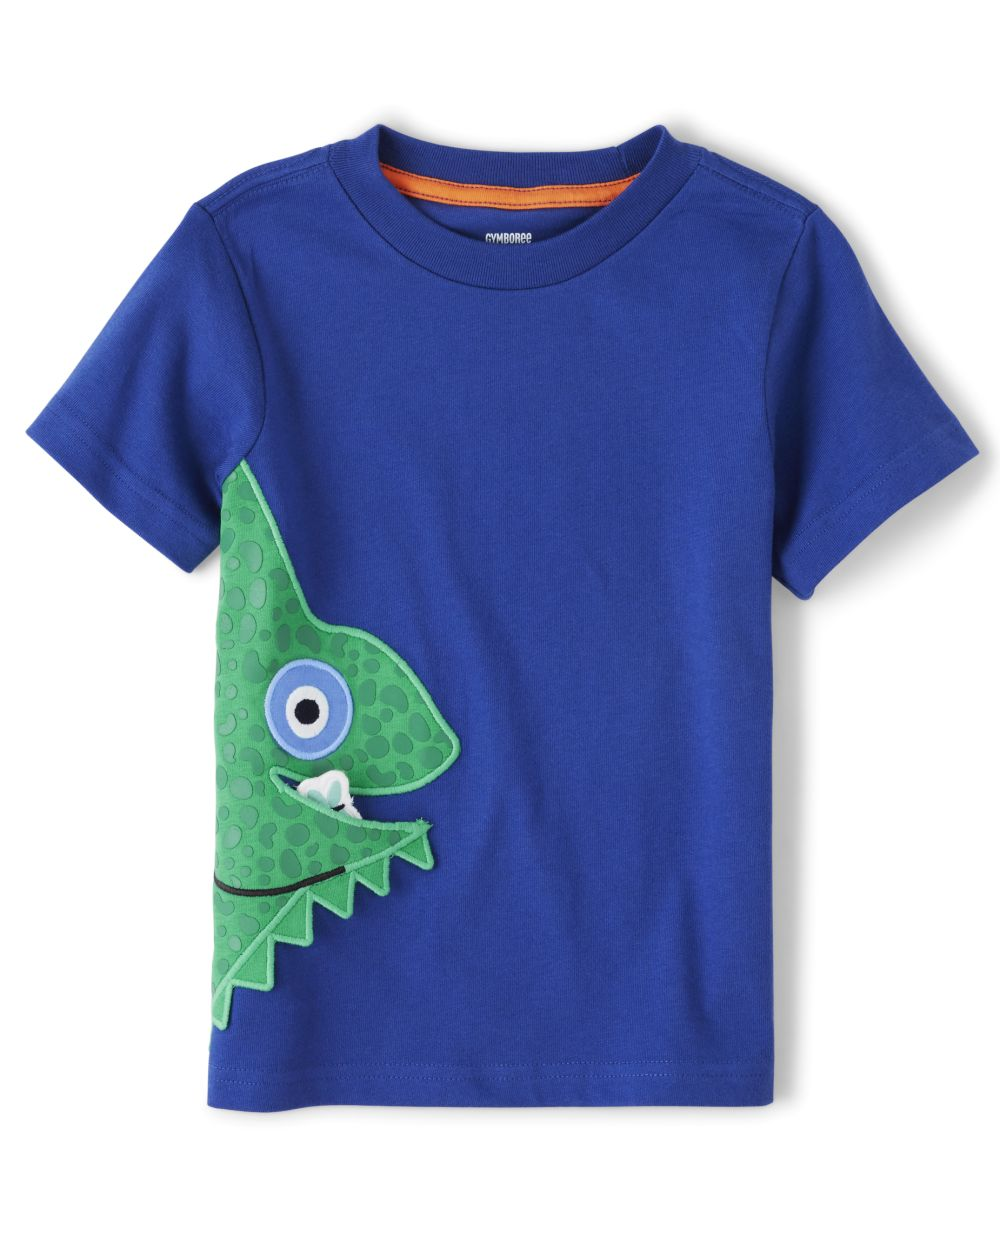 Boys Applique Chameleon Top - Summer Safari